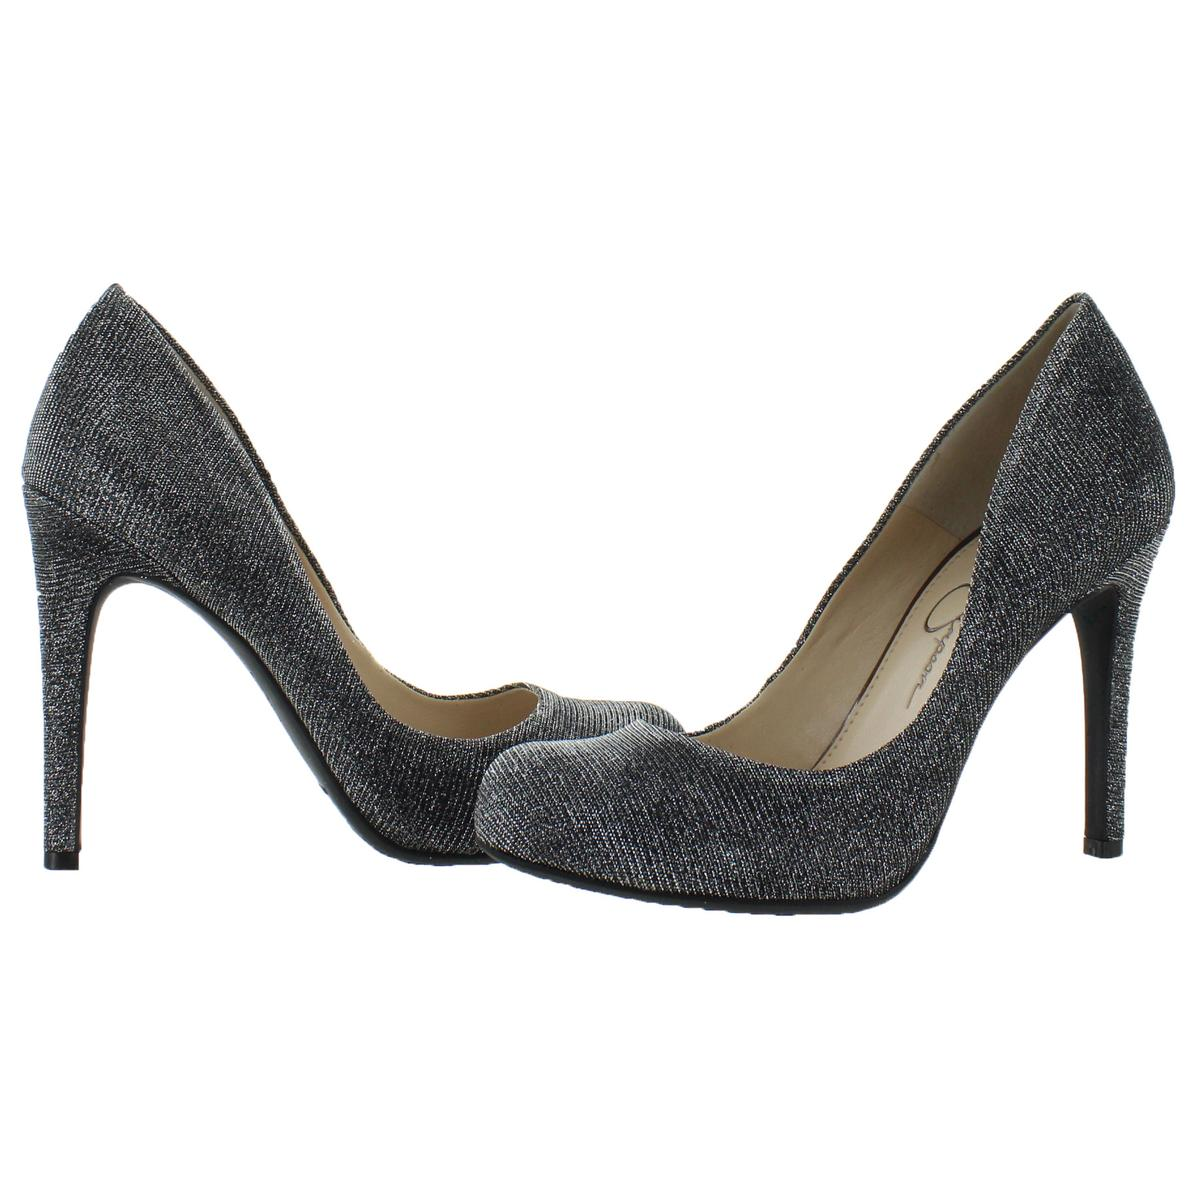 Jessica-Simpson-Women-039-s-Calie-Round-Toe-Classic-Heels-Pumps-Shoes thumbnail 12